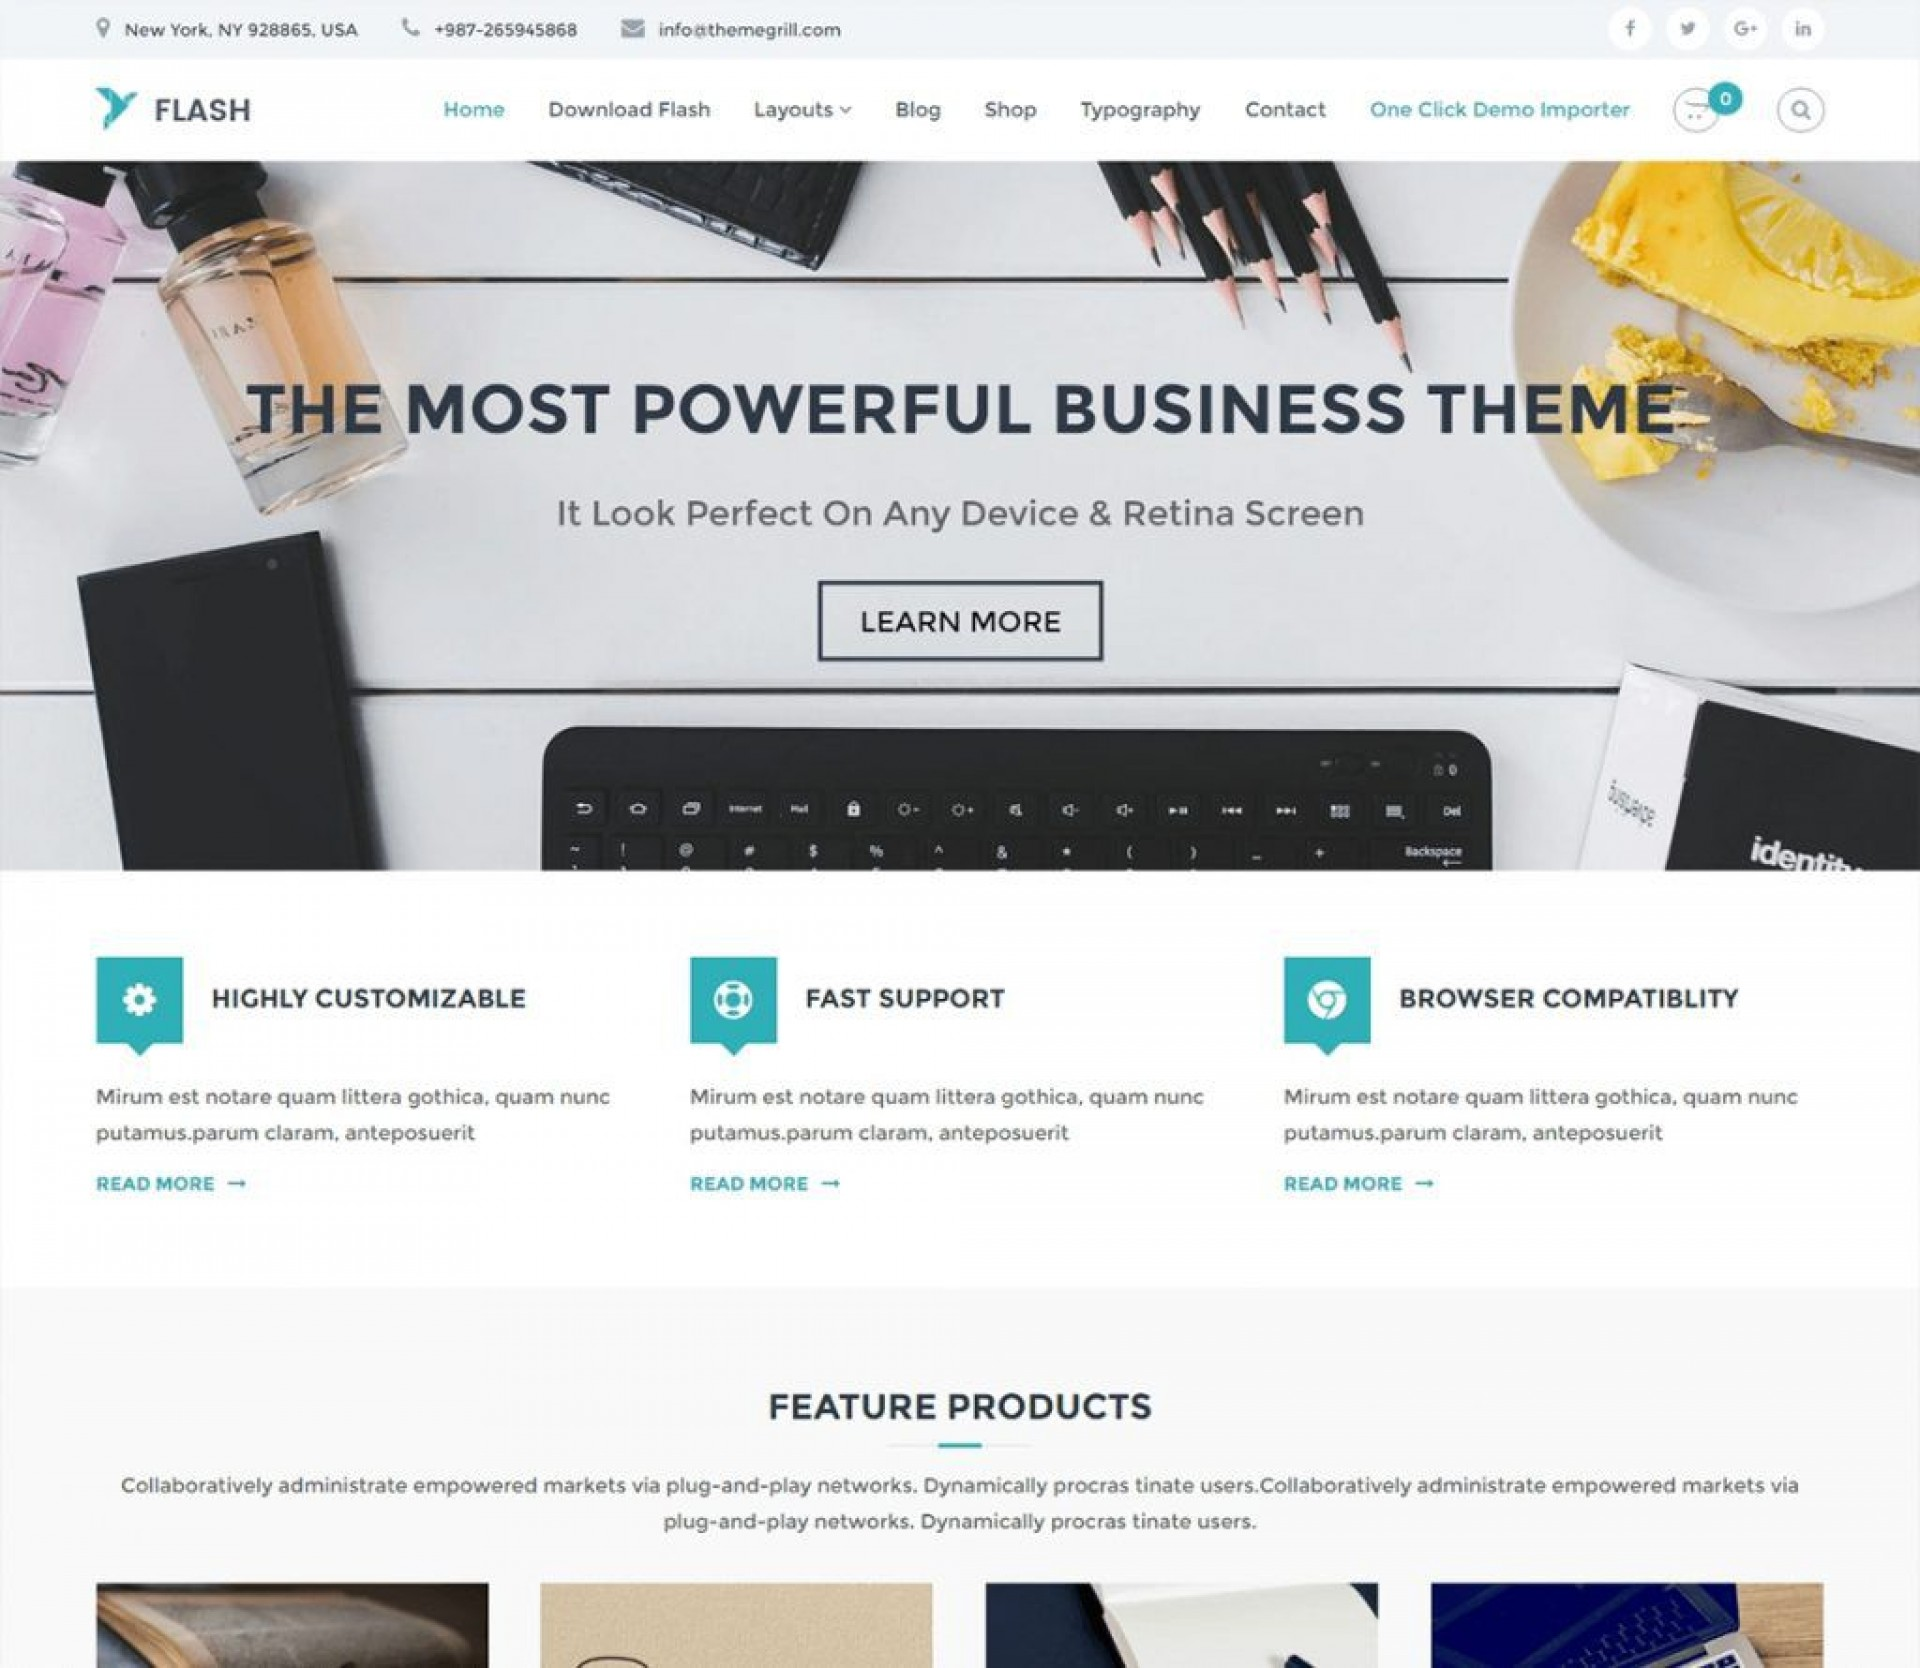 003 Astounding Professional Busines Website Template Free Download Wordpres Image  Wordpress1920